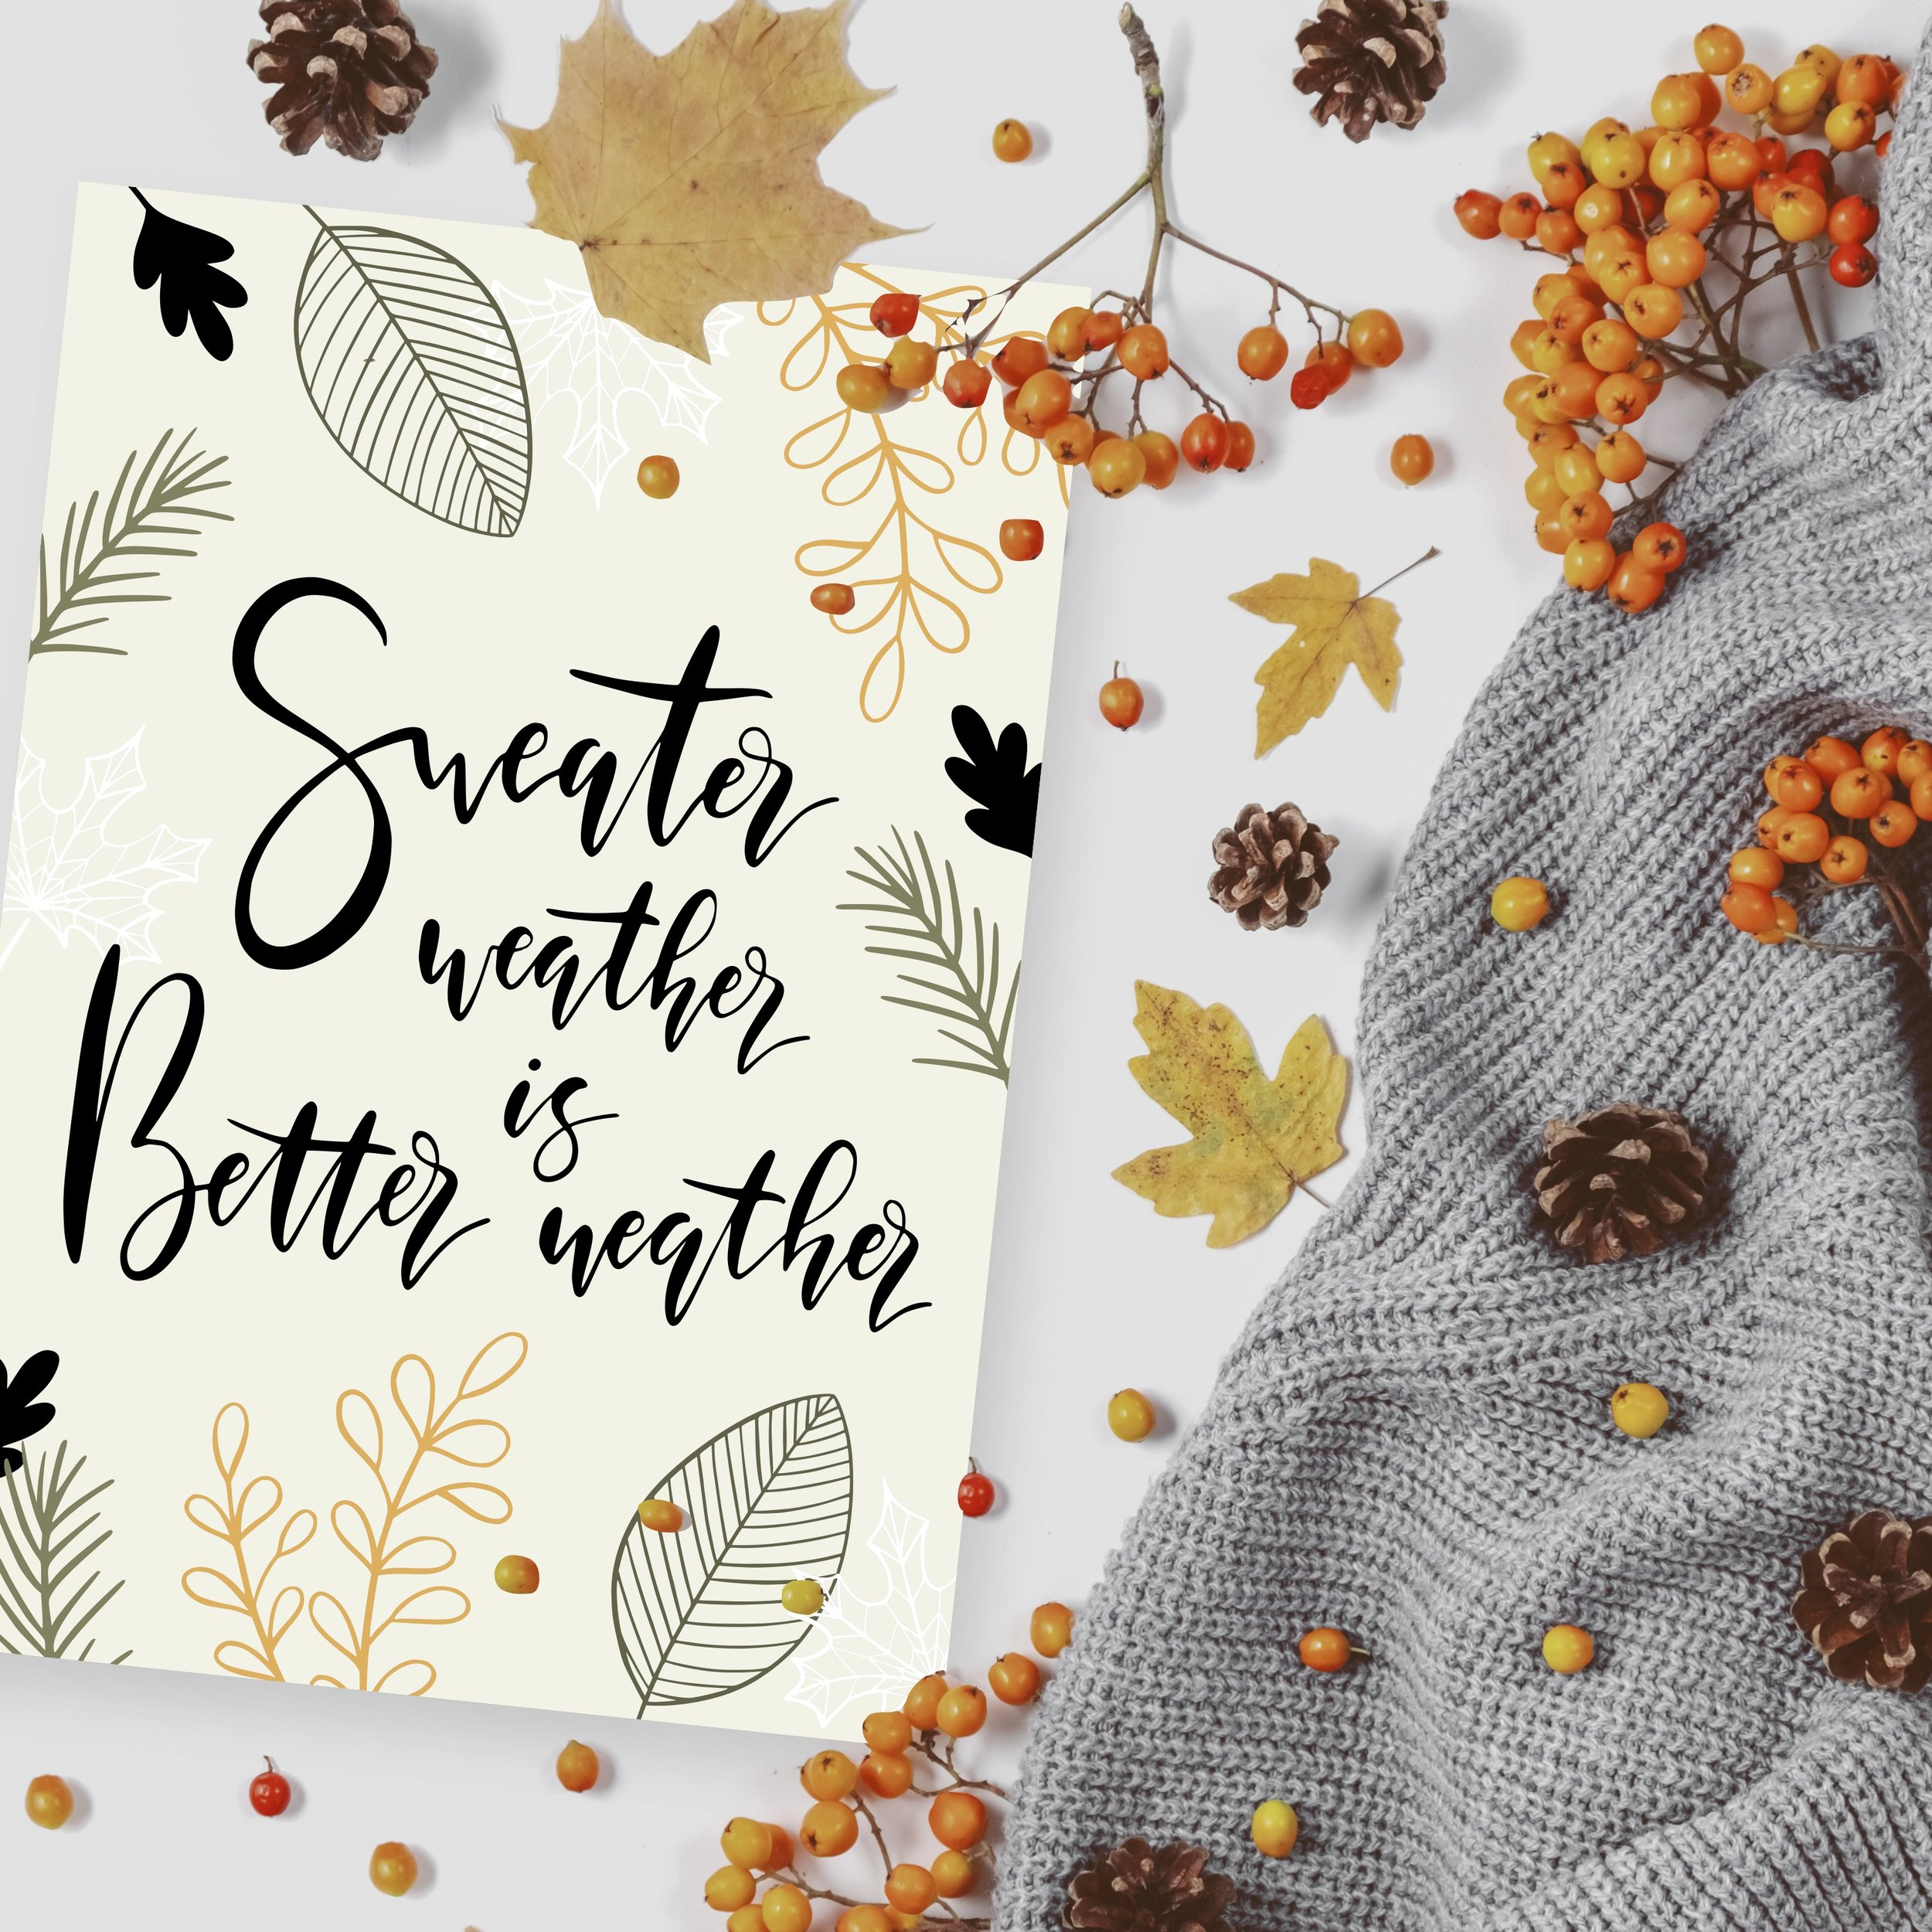 IG5660-Sweater Weather Mock Digital Graphic.jpg